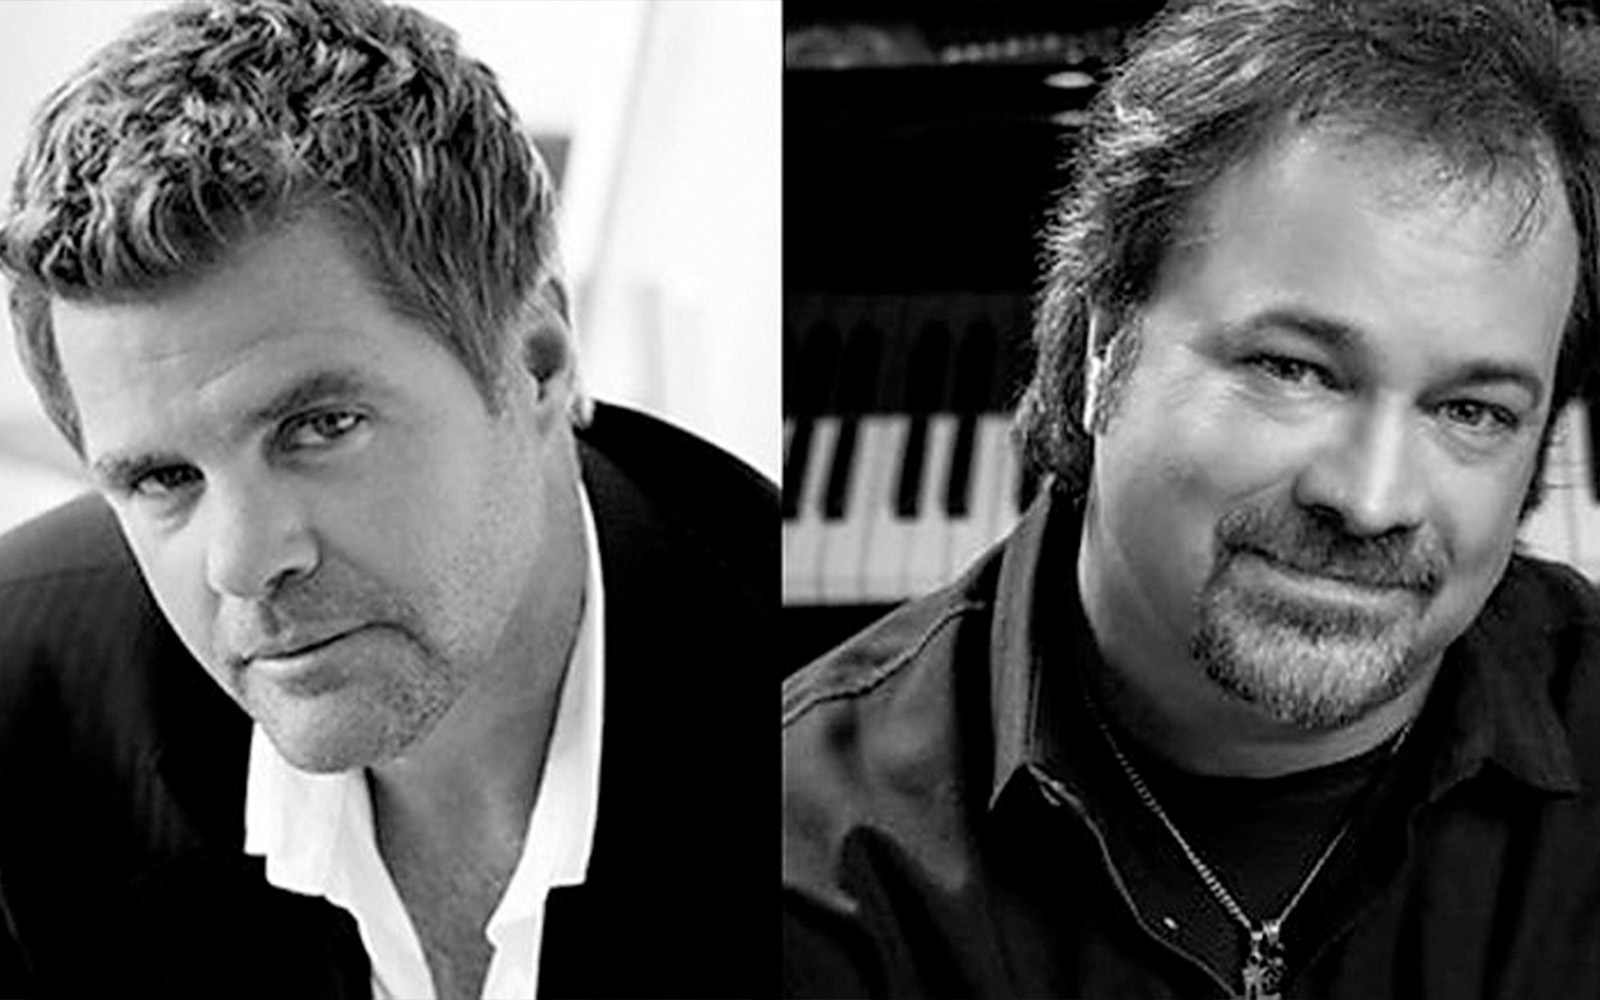 AN INTIMATE EVENING WITH LONESTAR'S RICHIE McDONALD AND RESTLESS HEART'S LARRY STEWART